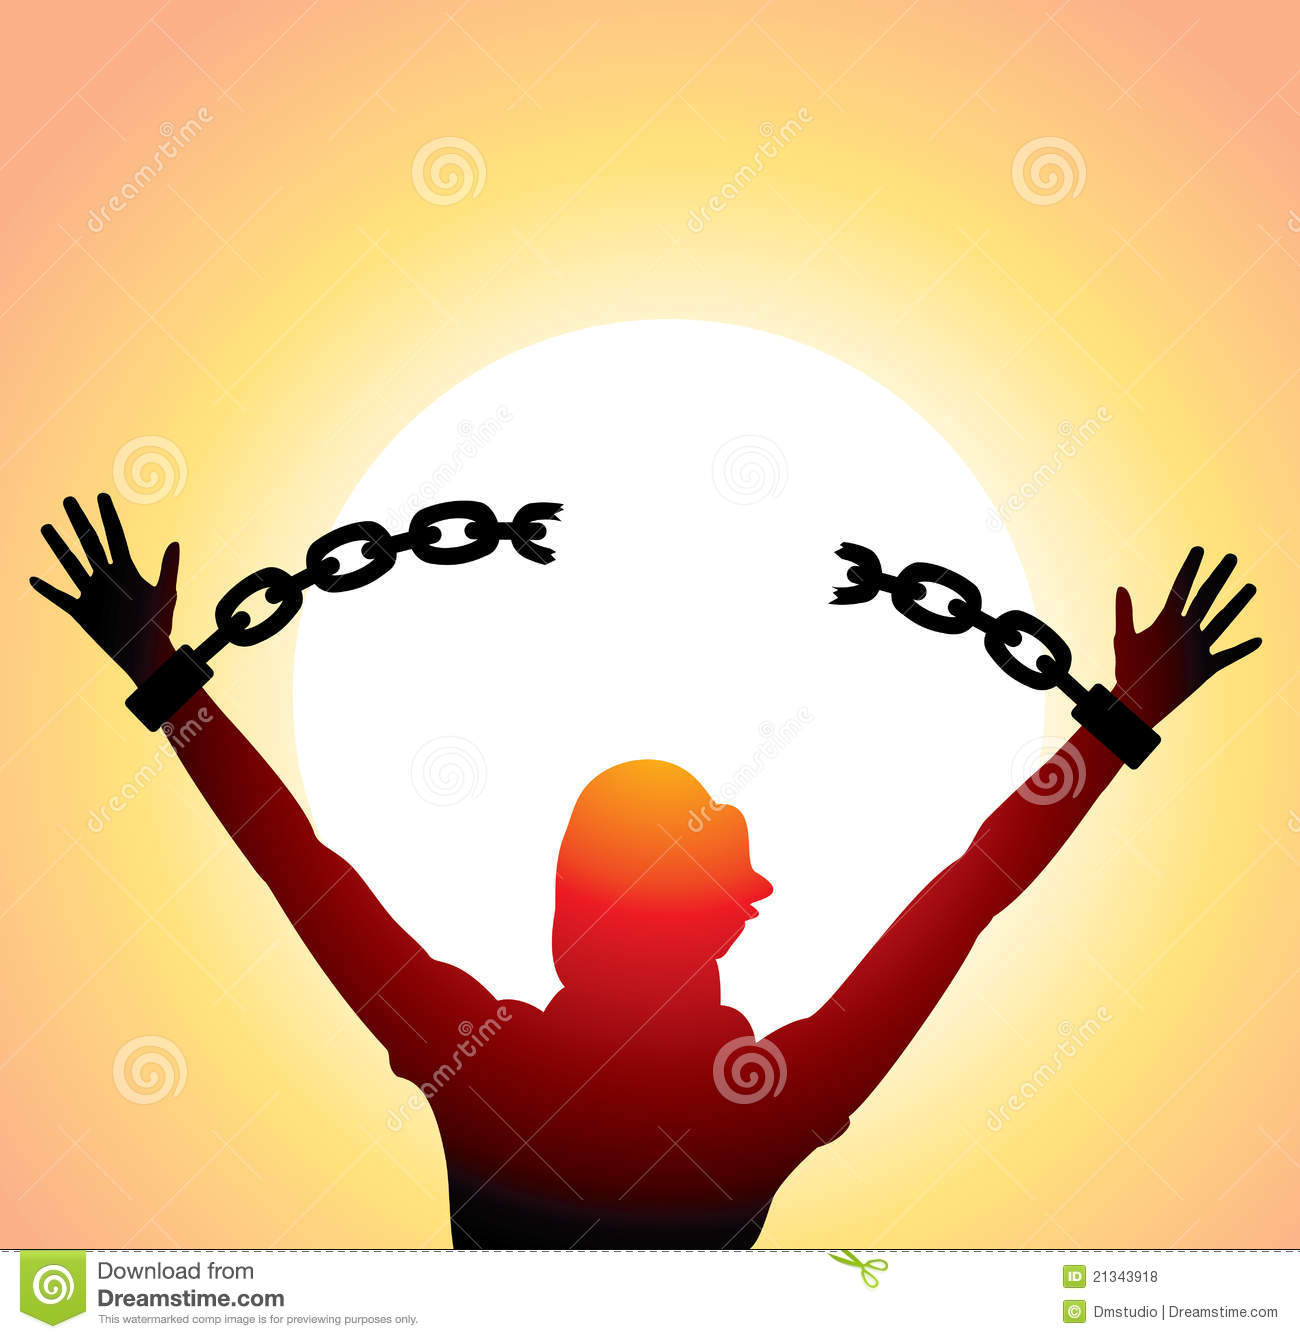 Broken Chains Girl With Raised Hands And Stock Illustration